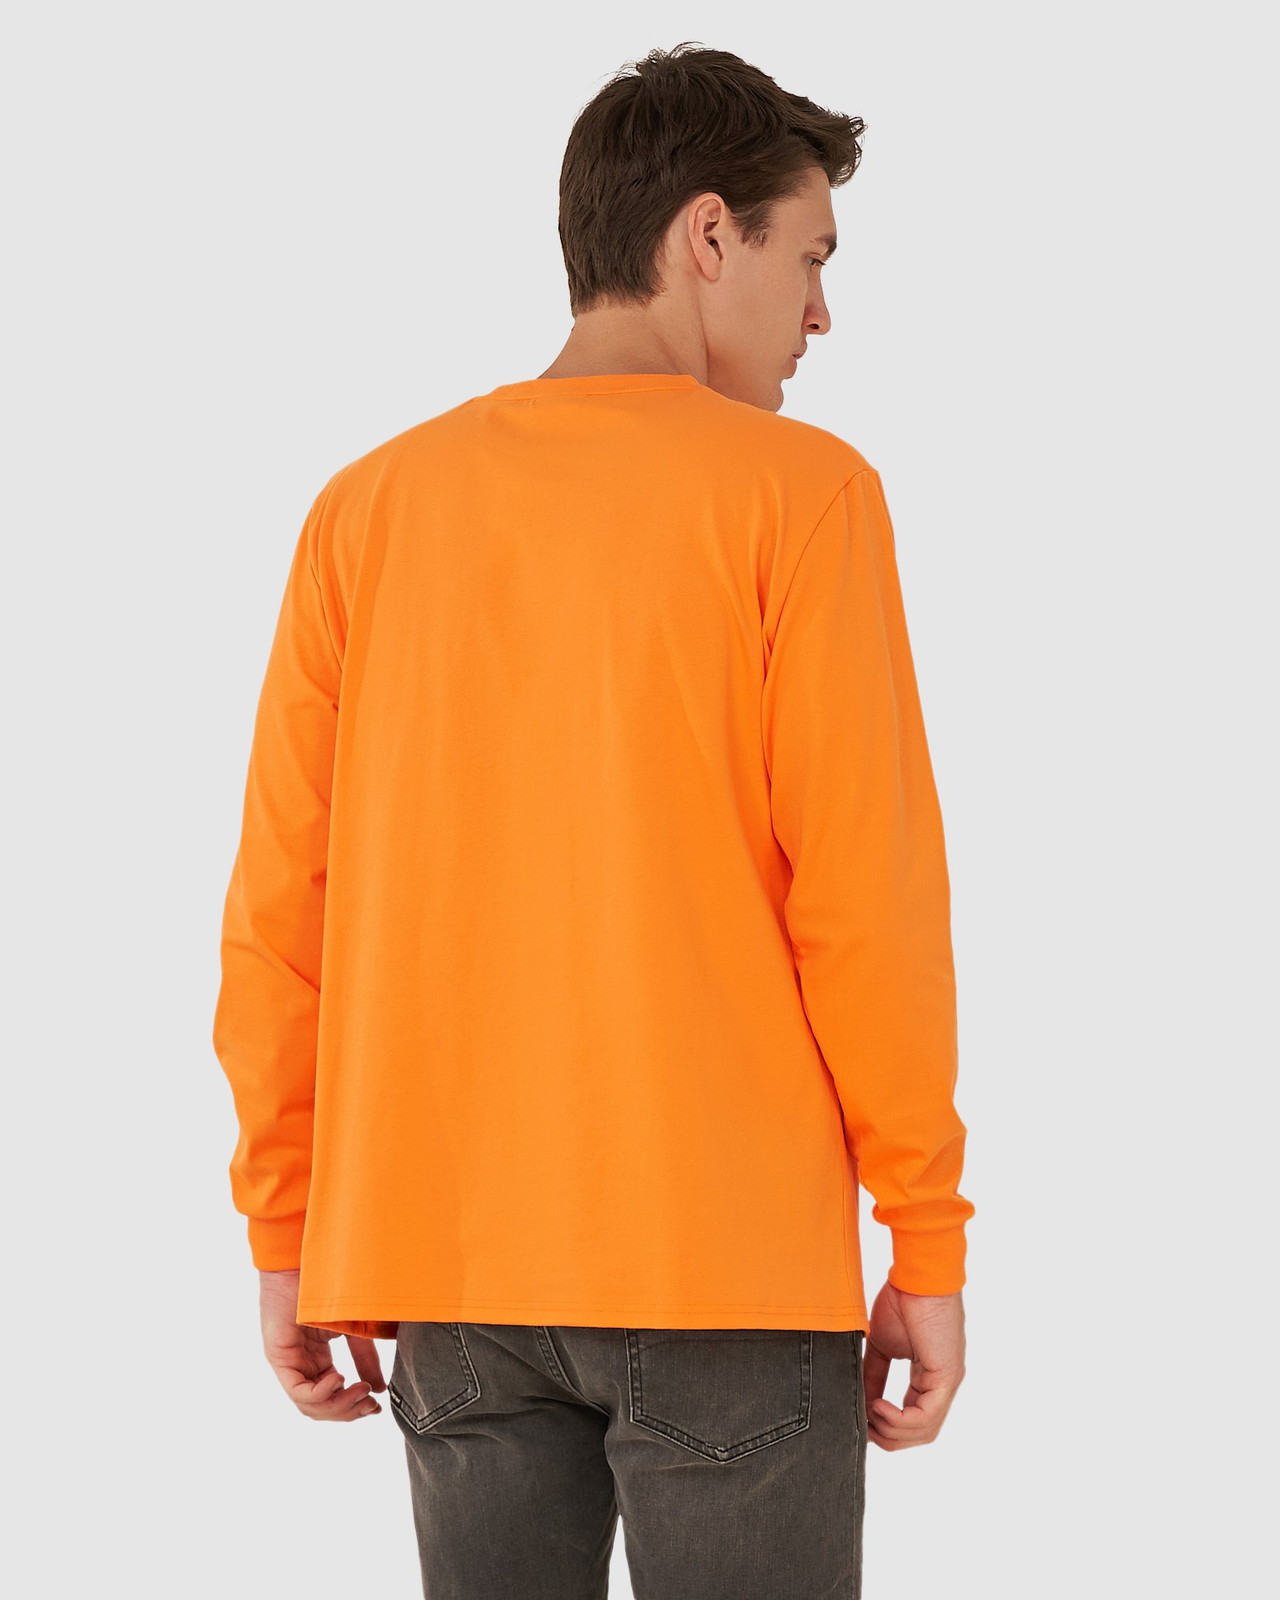 Superdry Mens YACHT PREP LS TOP Orange Long Sleeve T Shirts 3